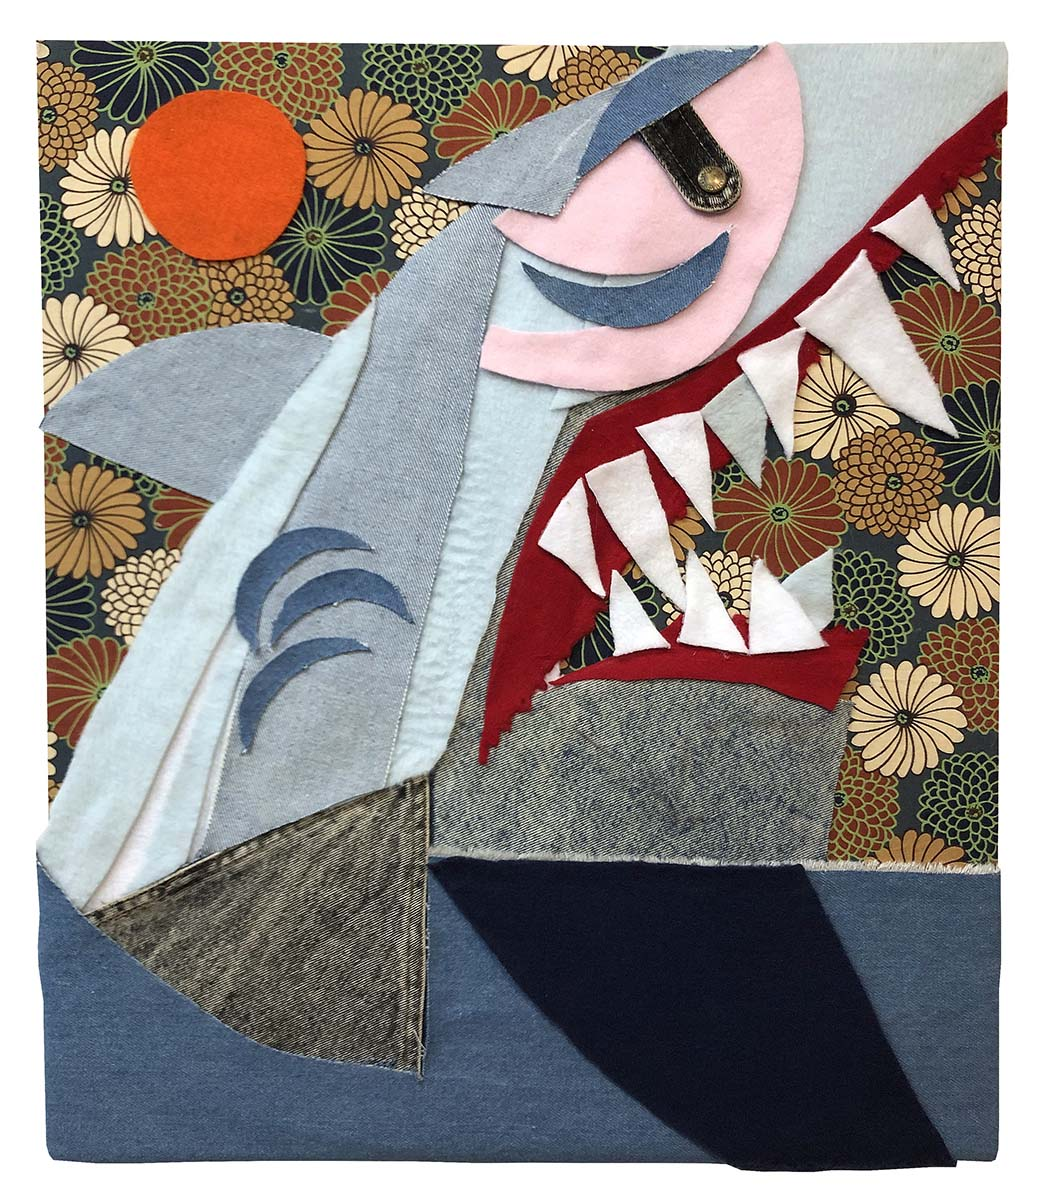 Chris Williford, Shark Rise with Orange Sun (2019), Fleece, bleached denim, felt, and printed cotton on canvas